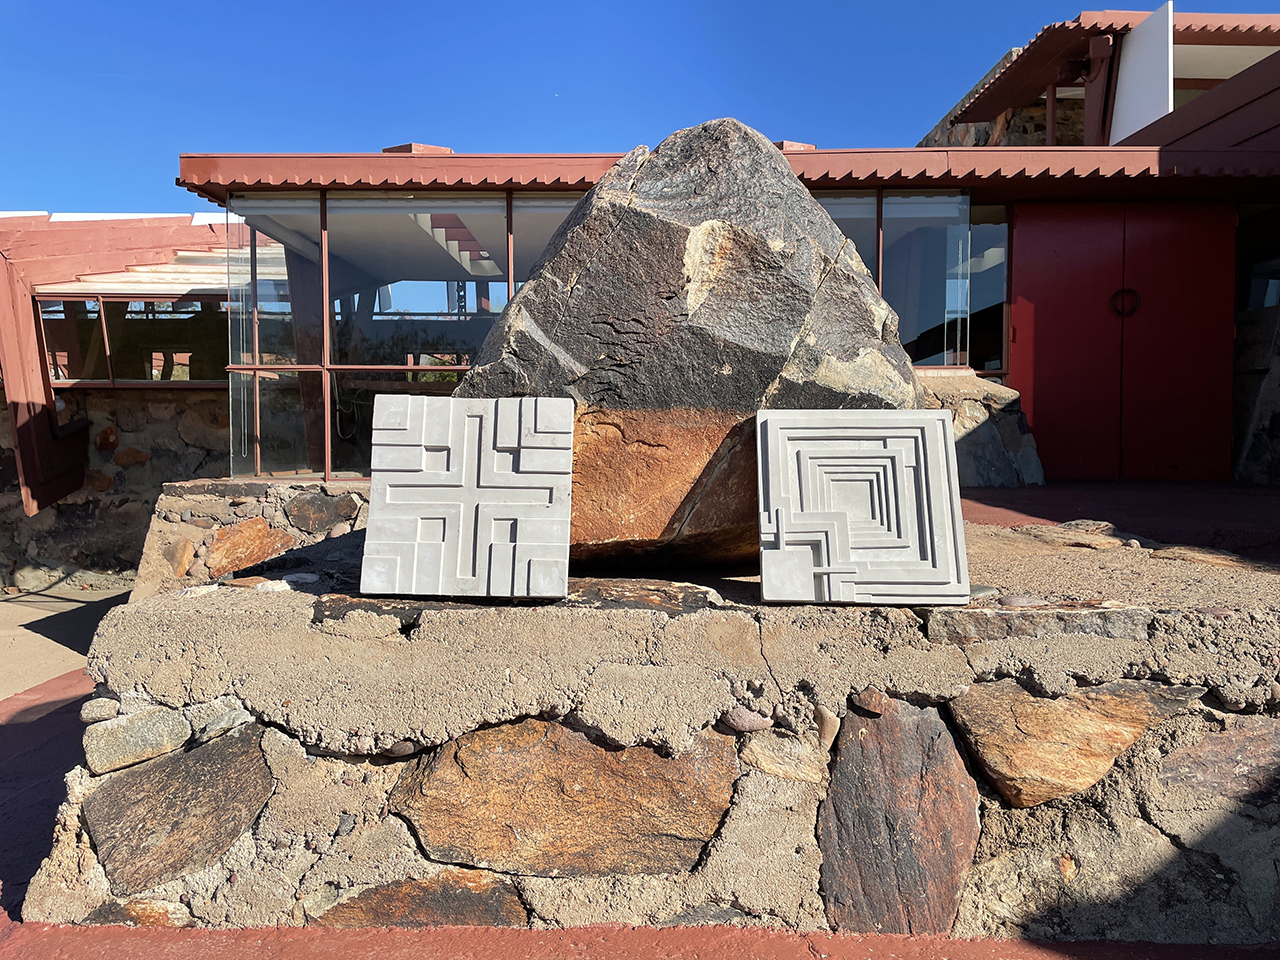 two cement tiles leaning against a rock with a building and blue skies in the background